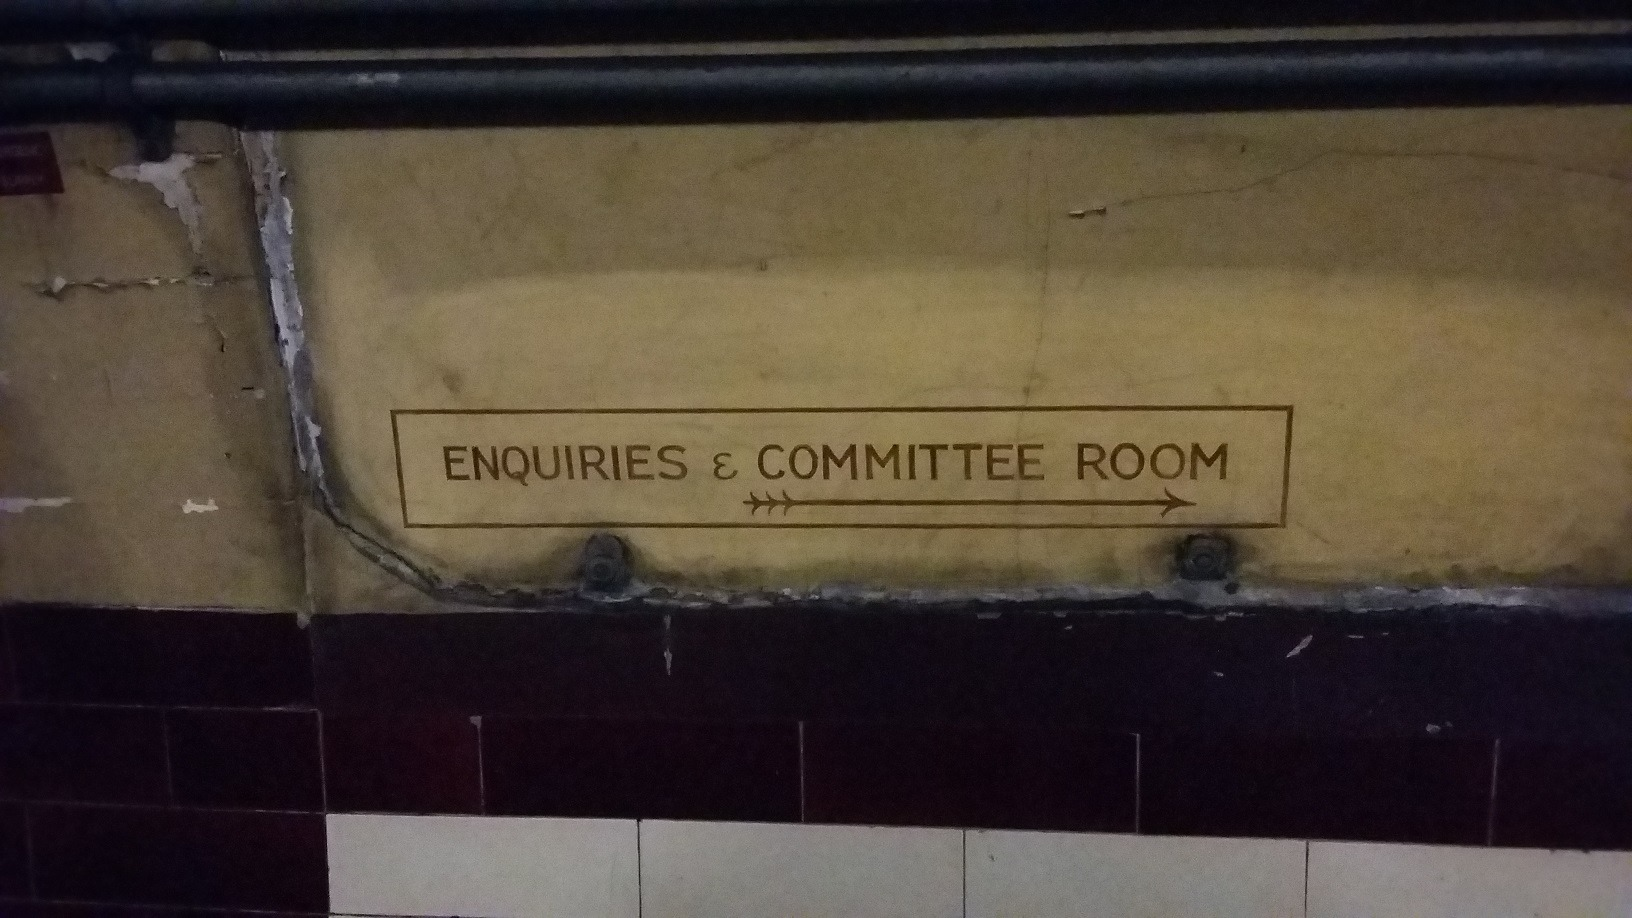 Directions to the committee room